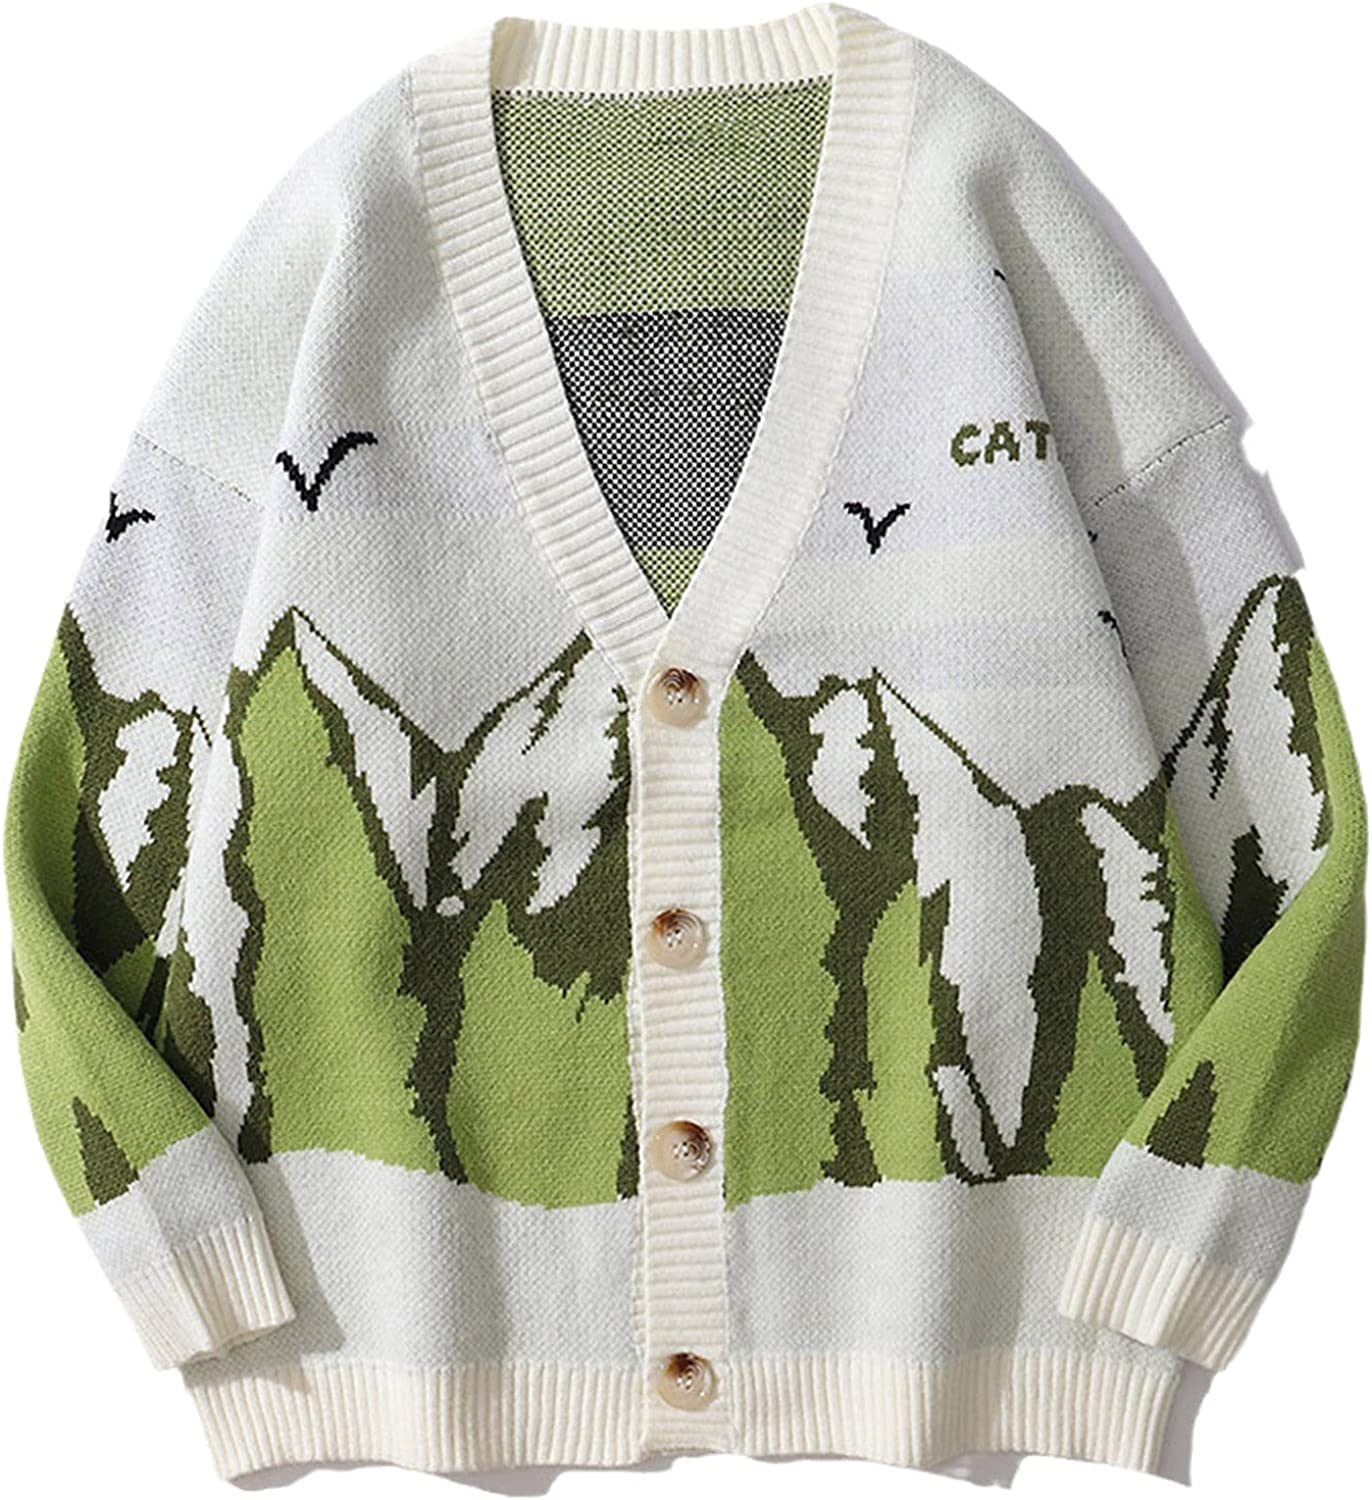 Men Mountains Graphic Knitted Sweater Cardigan Women Color Contrast Vintage Sweater